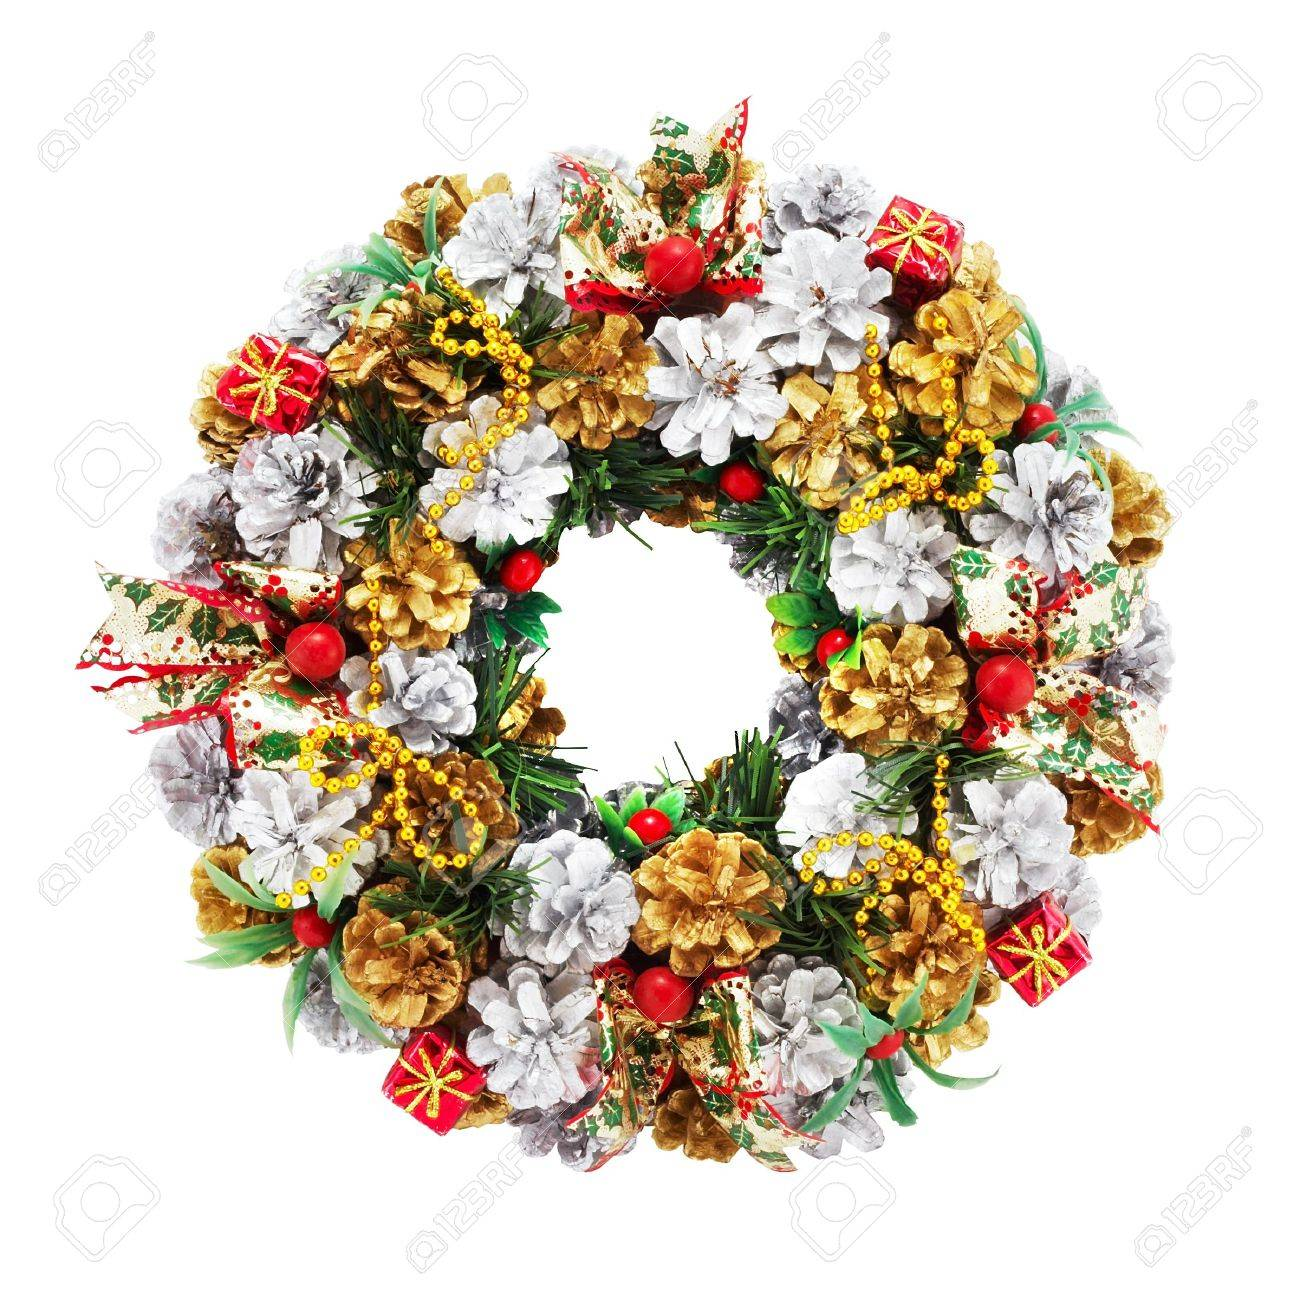 holiday wreath on a white background with clipping path for designers - 933621